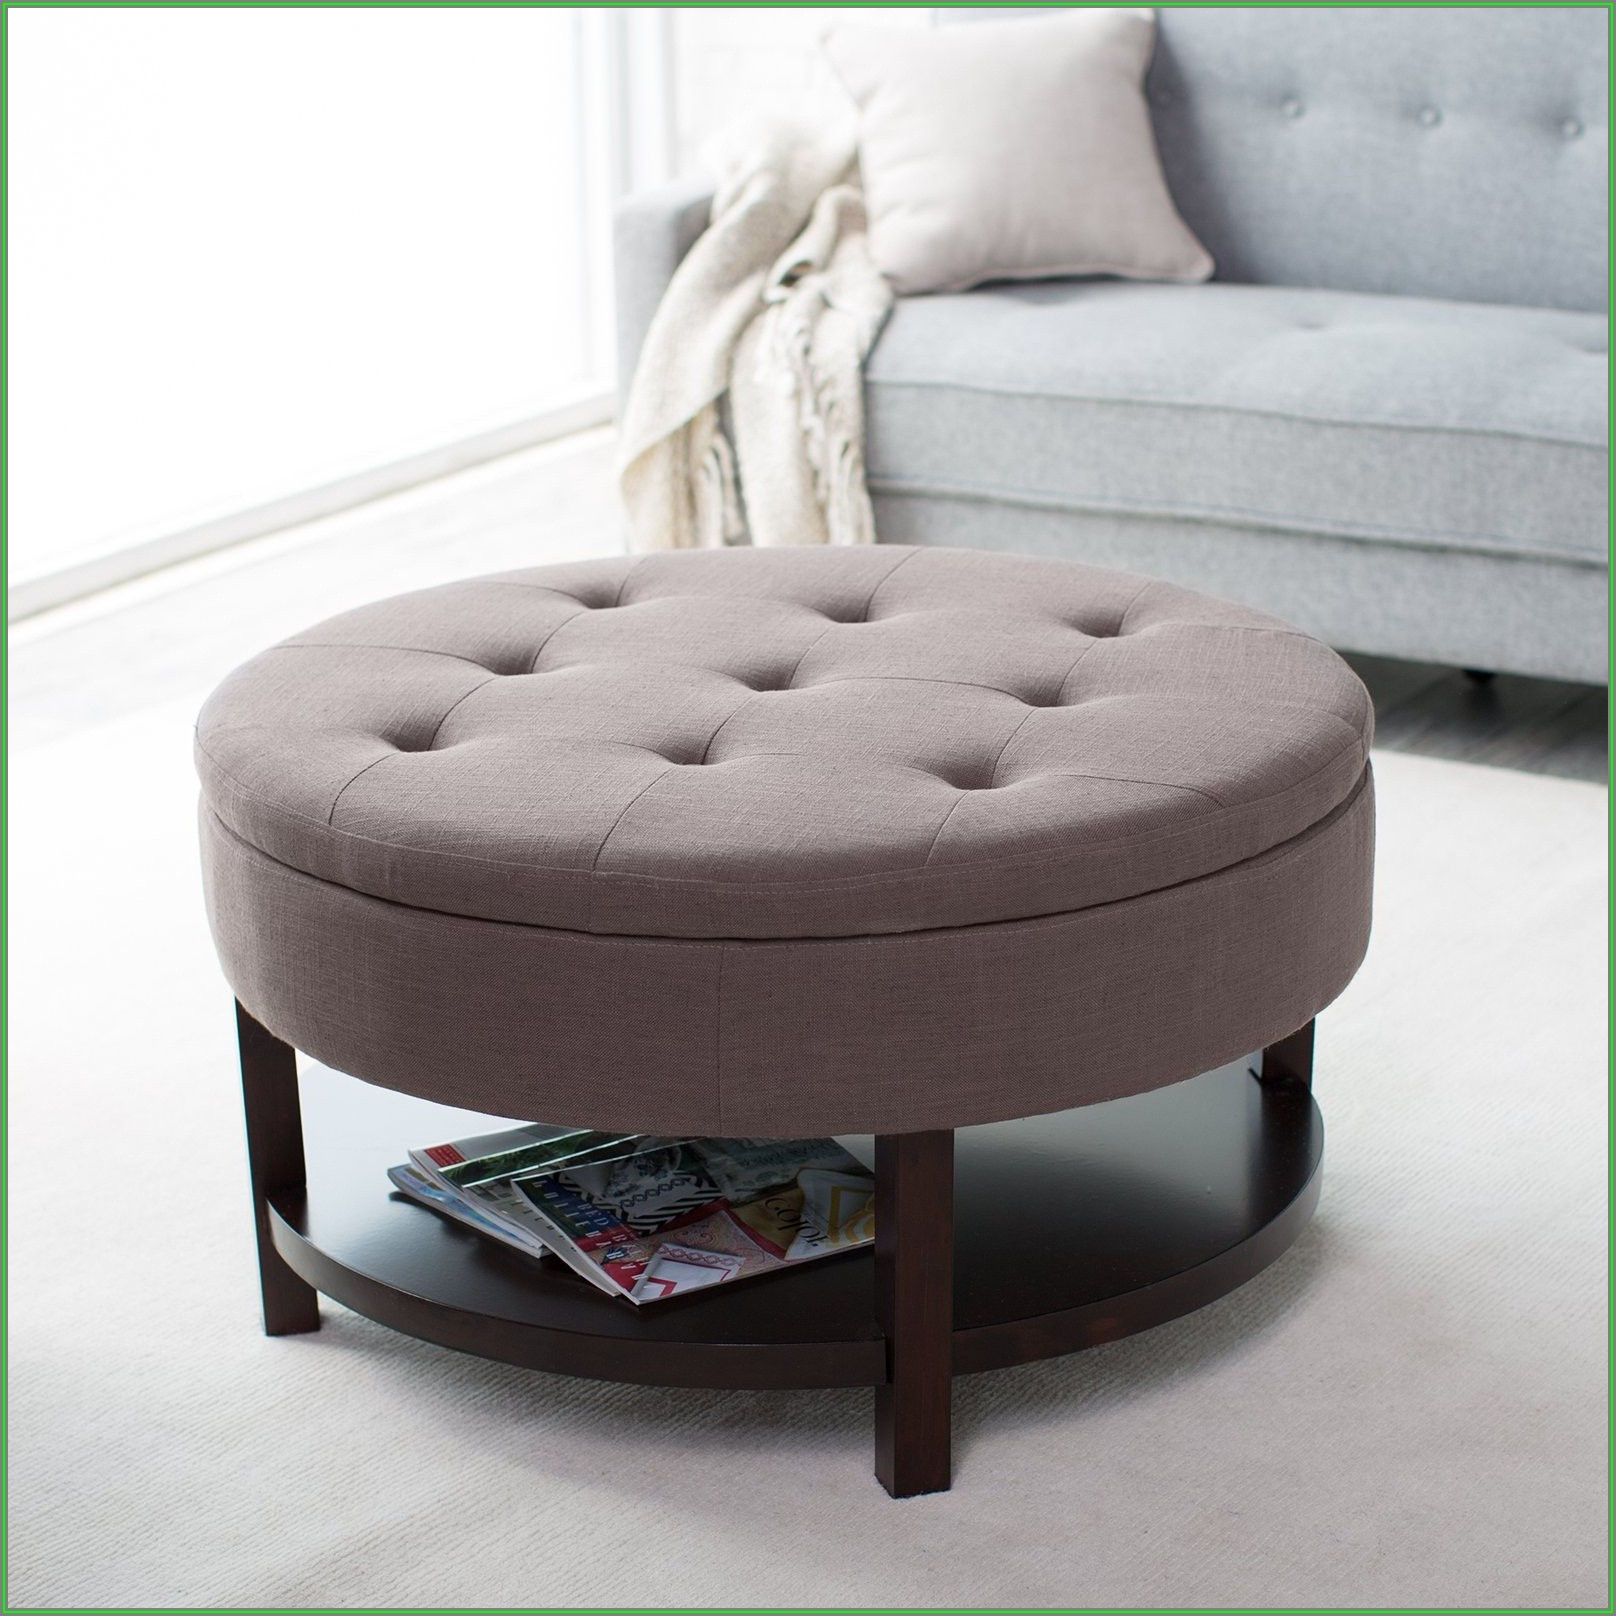 Round Ottoman Coffee Table Canada